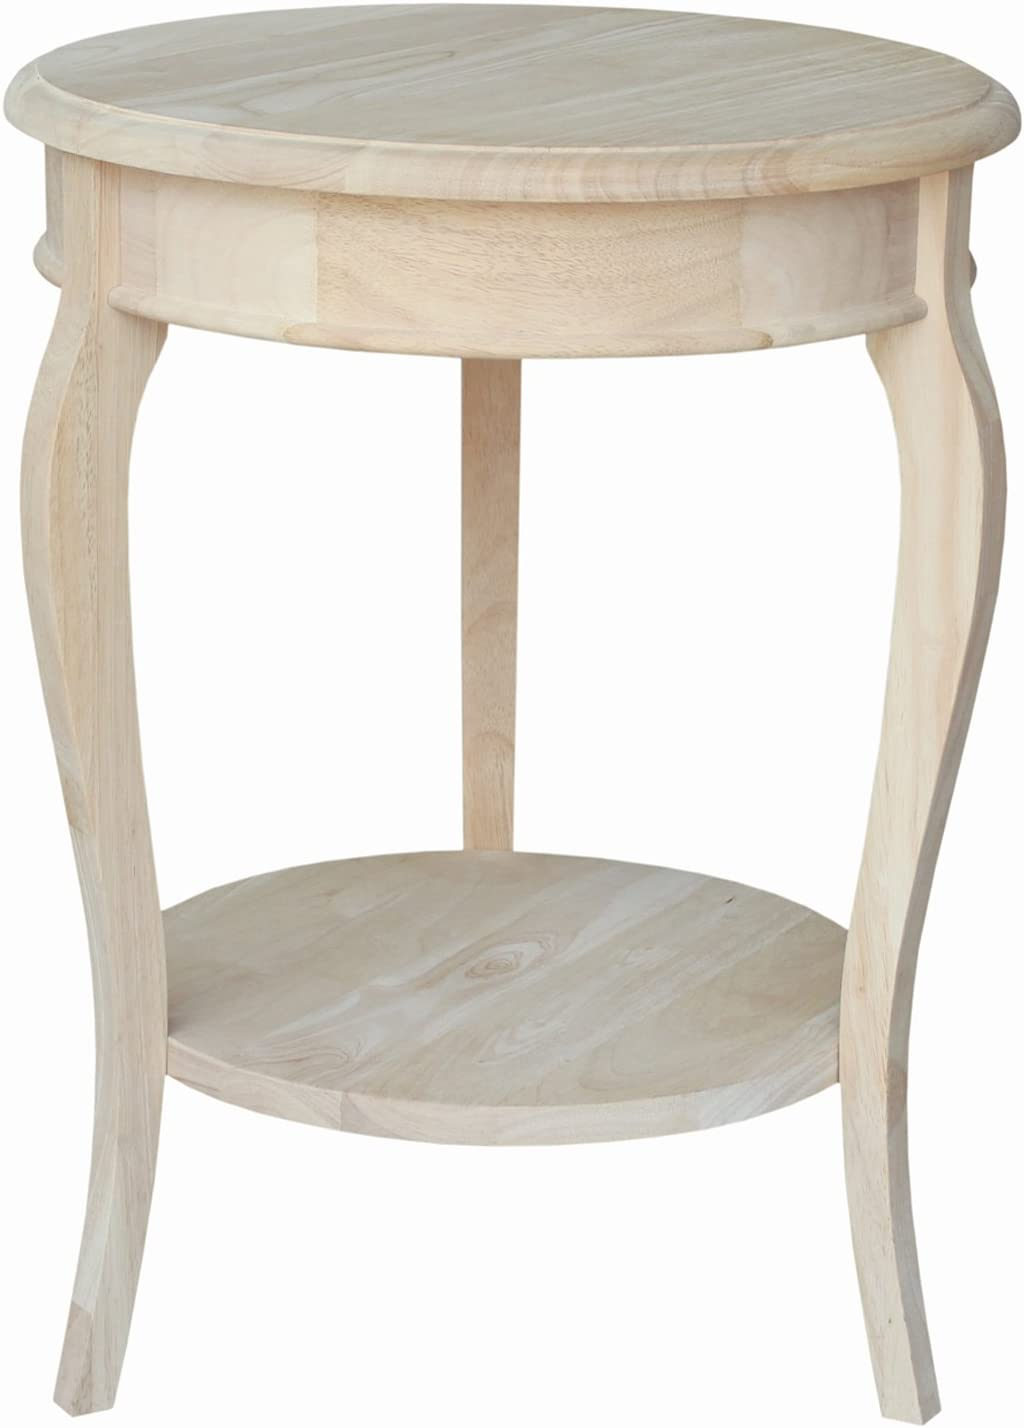 International Concepts Cambria Round End Table, 14.5 by 14.5-Inch